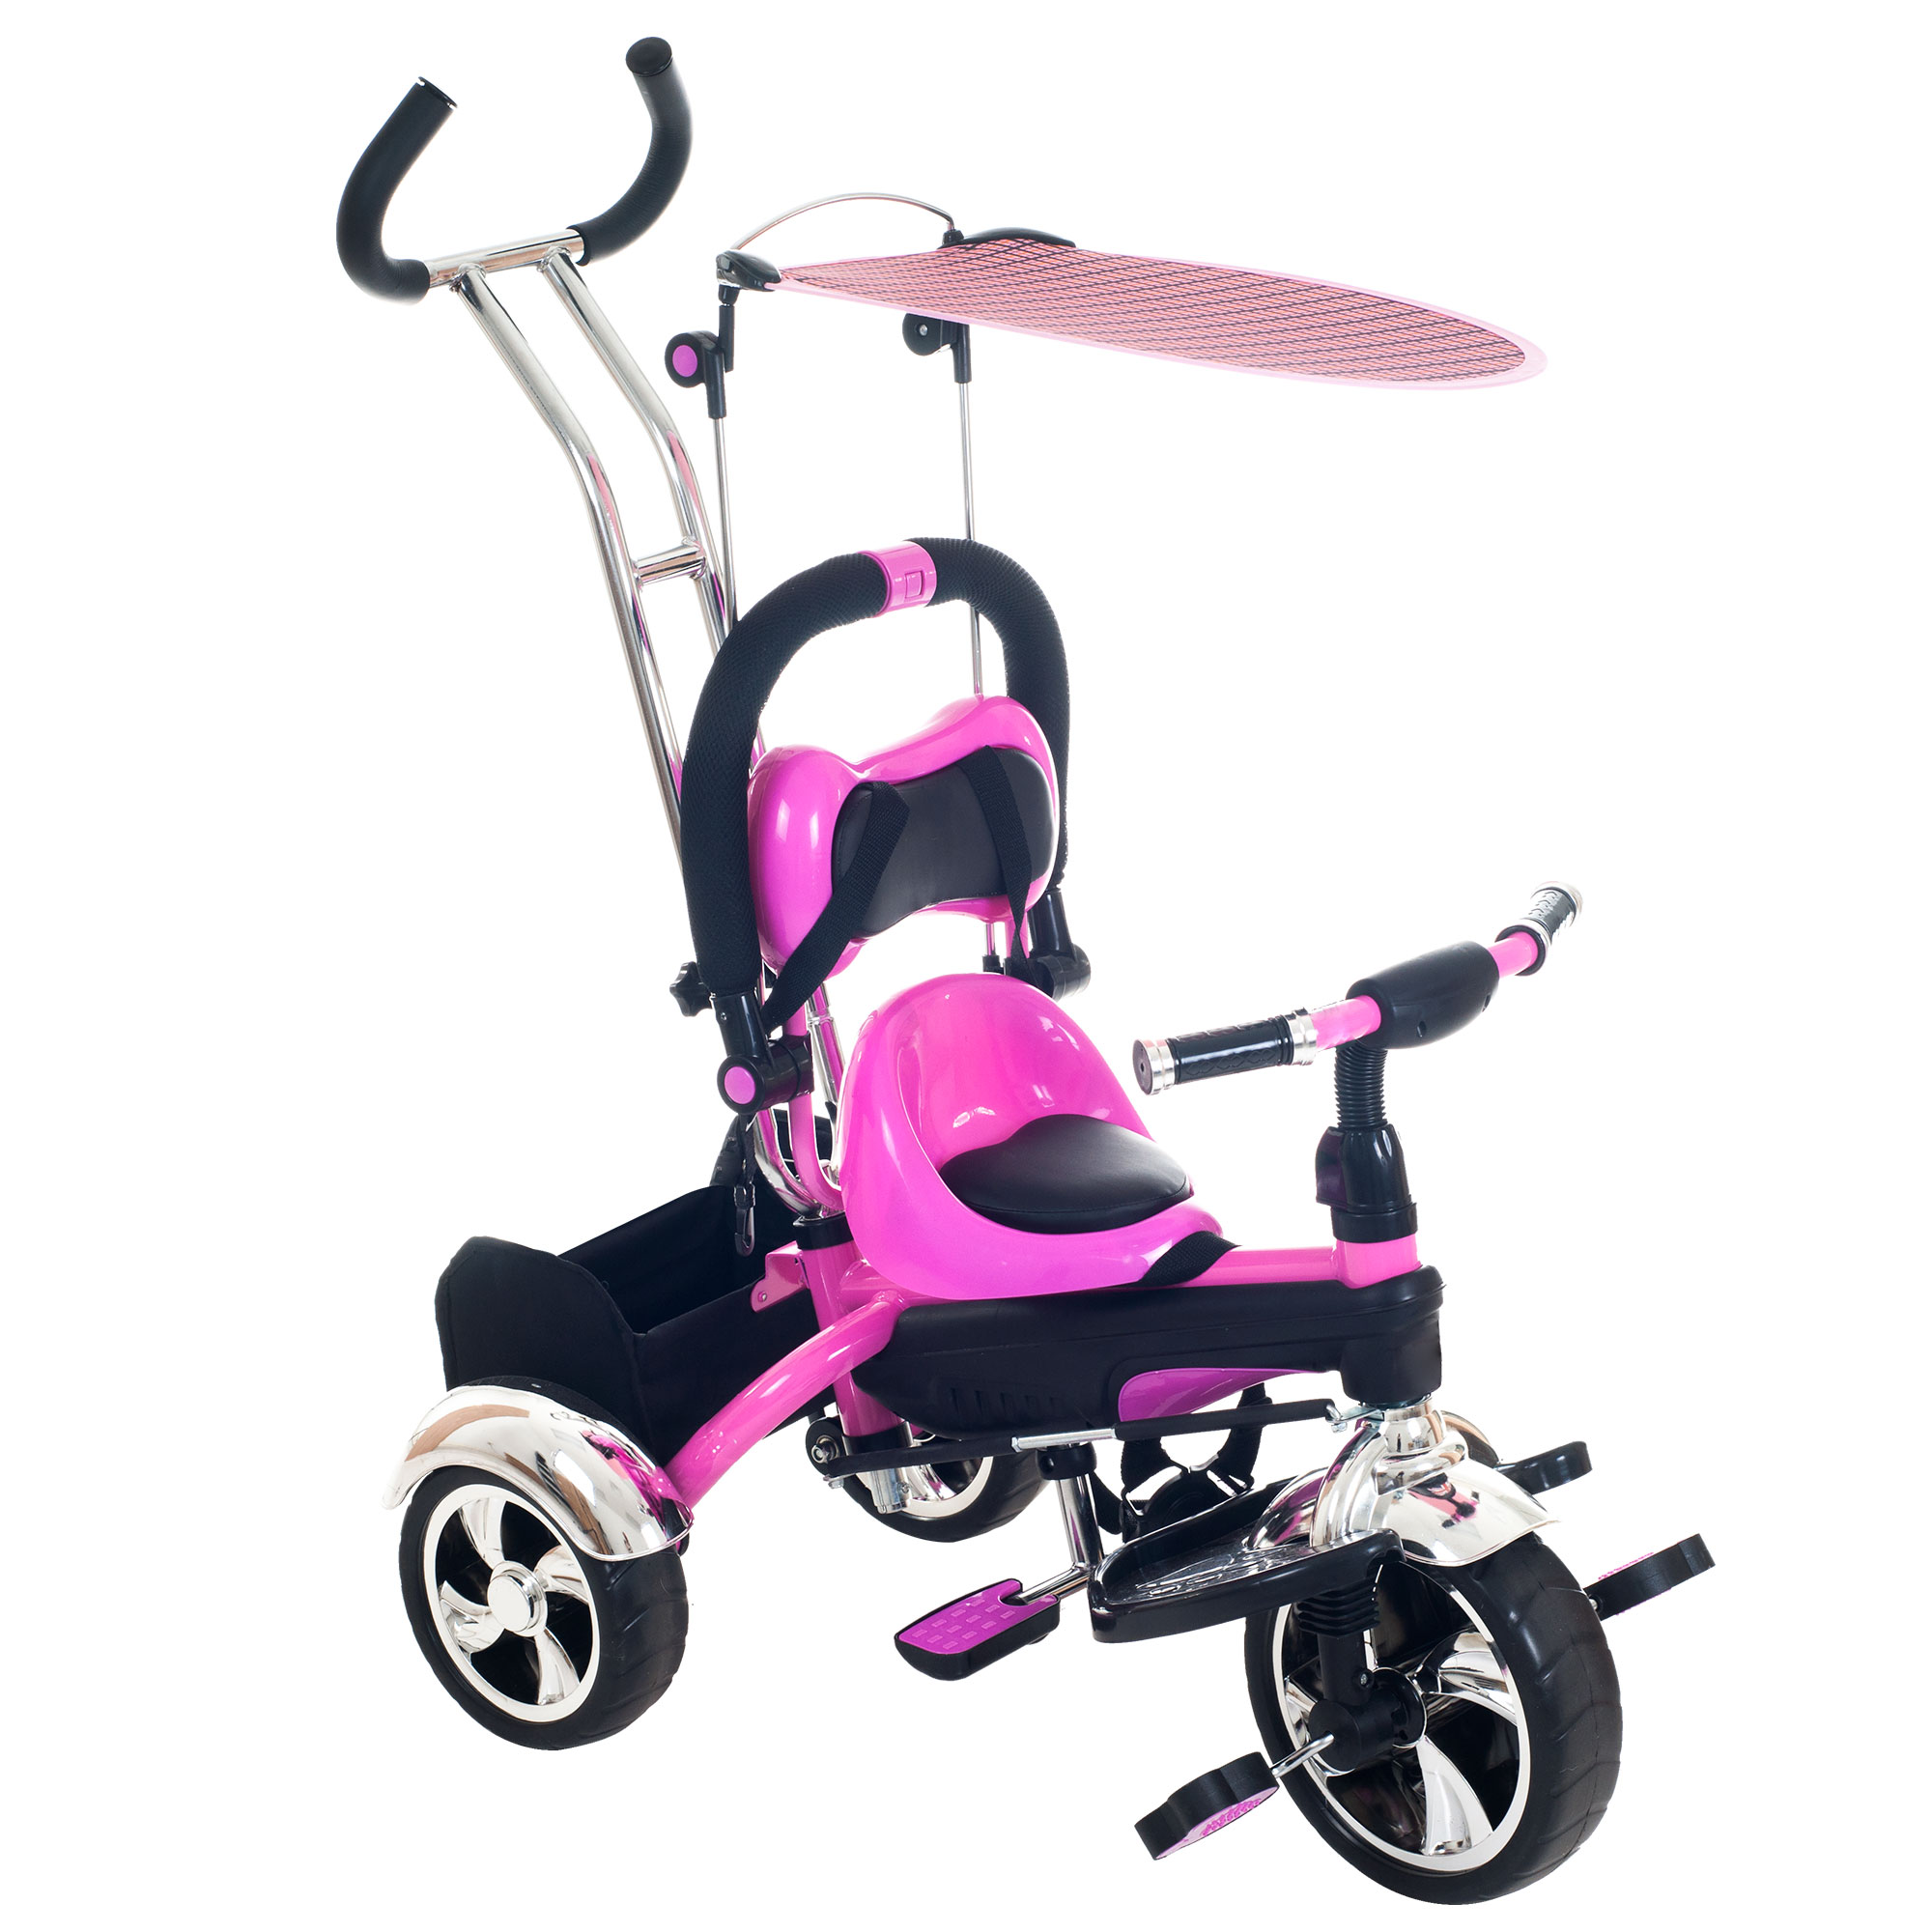 Tricycle Stroller Bike, 3-1 Stroller with Removable Canopy and Stroller Organizer by Hey! Play!, Ride on Toys for Boys and Girls, 1 - 5 Year Old, Pink